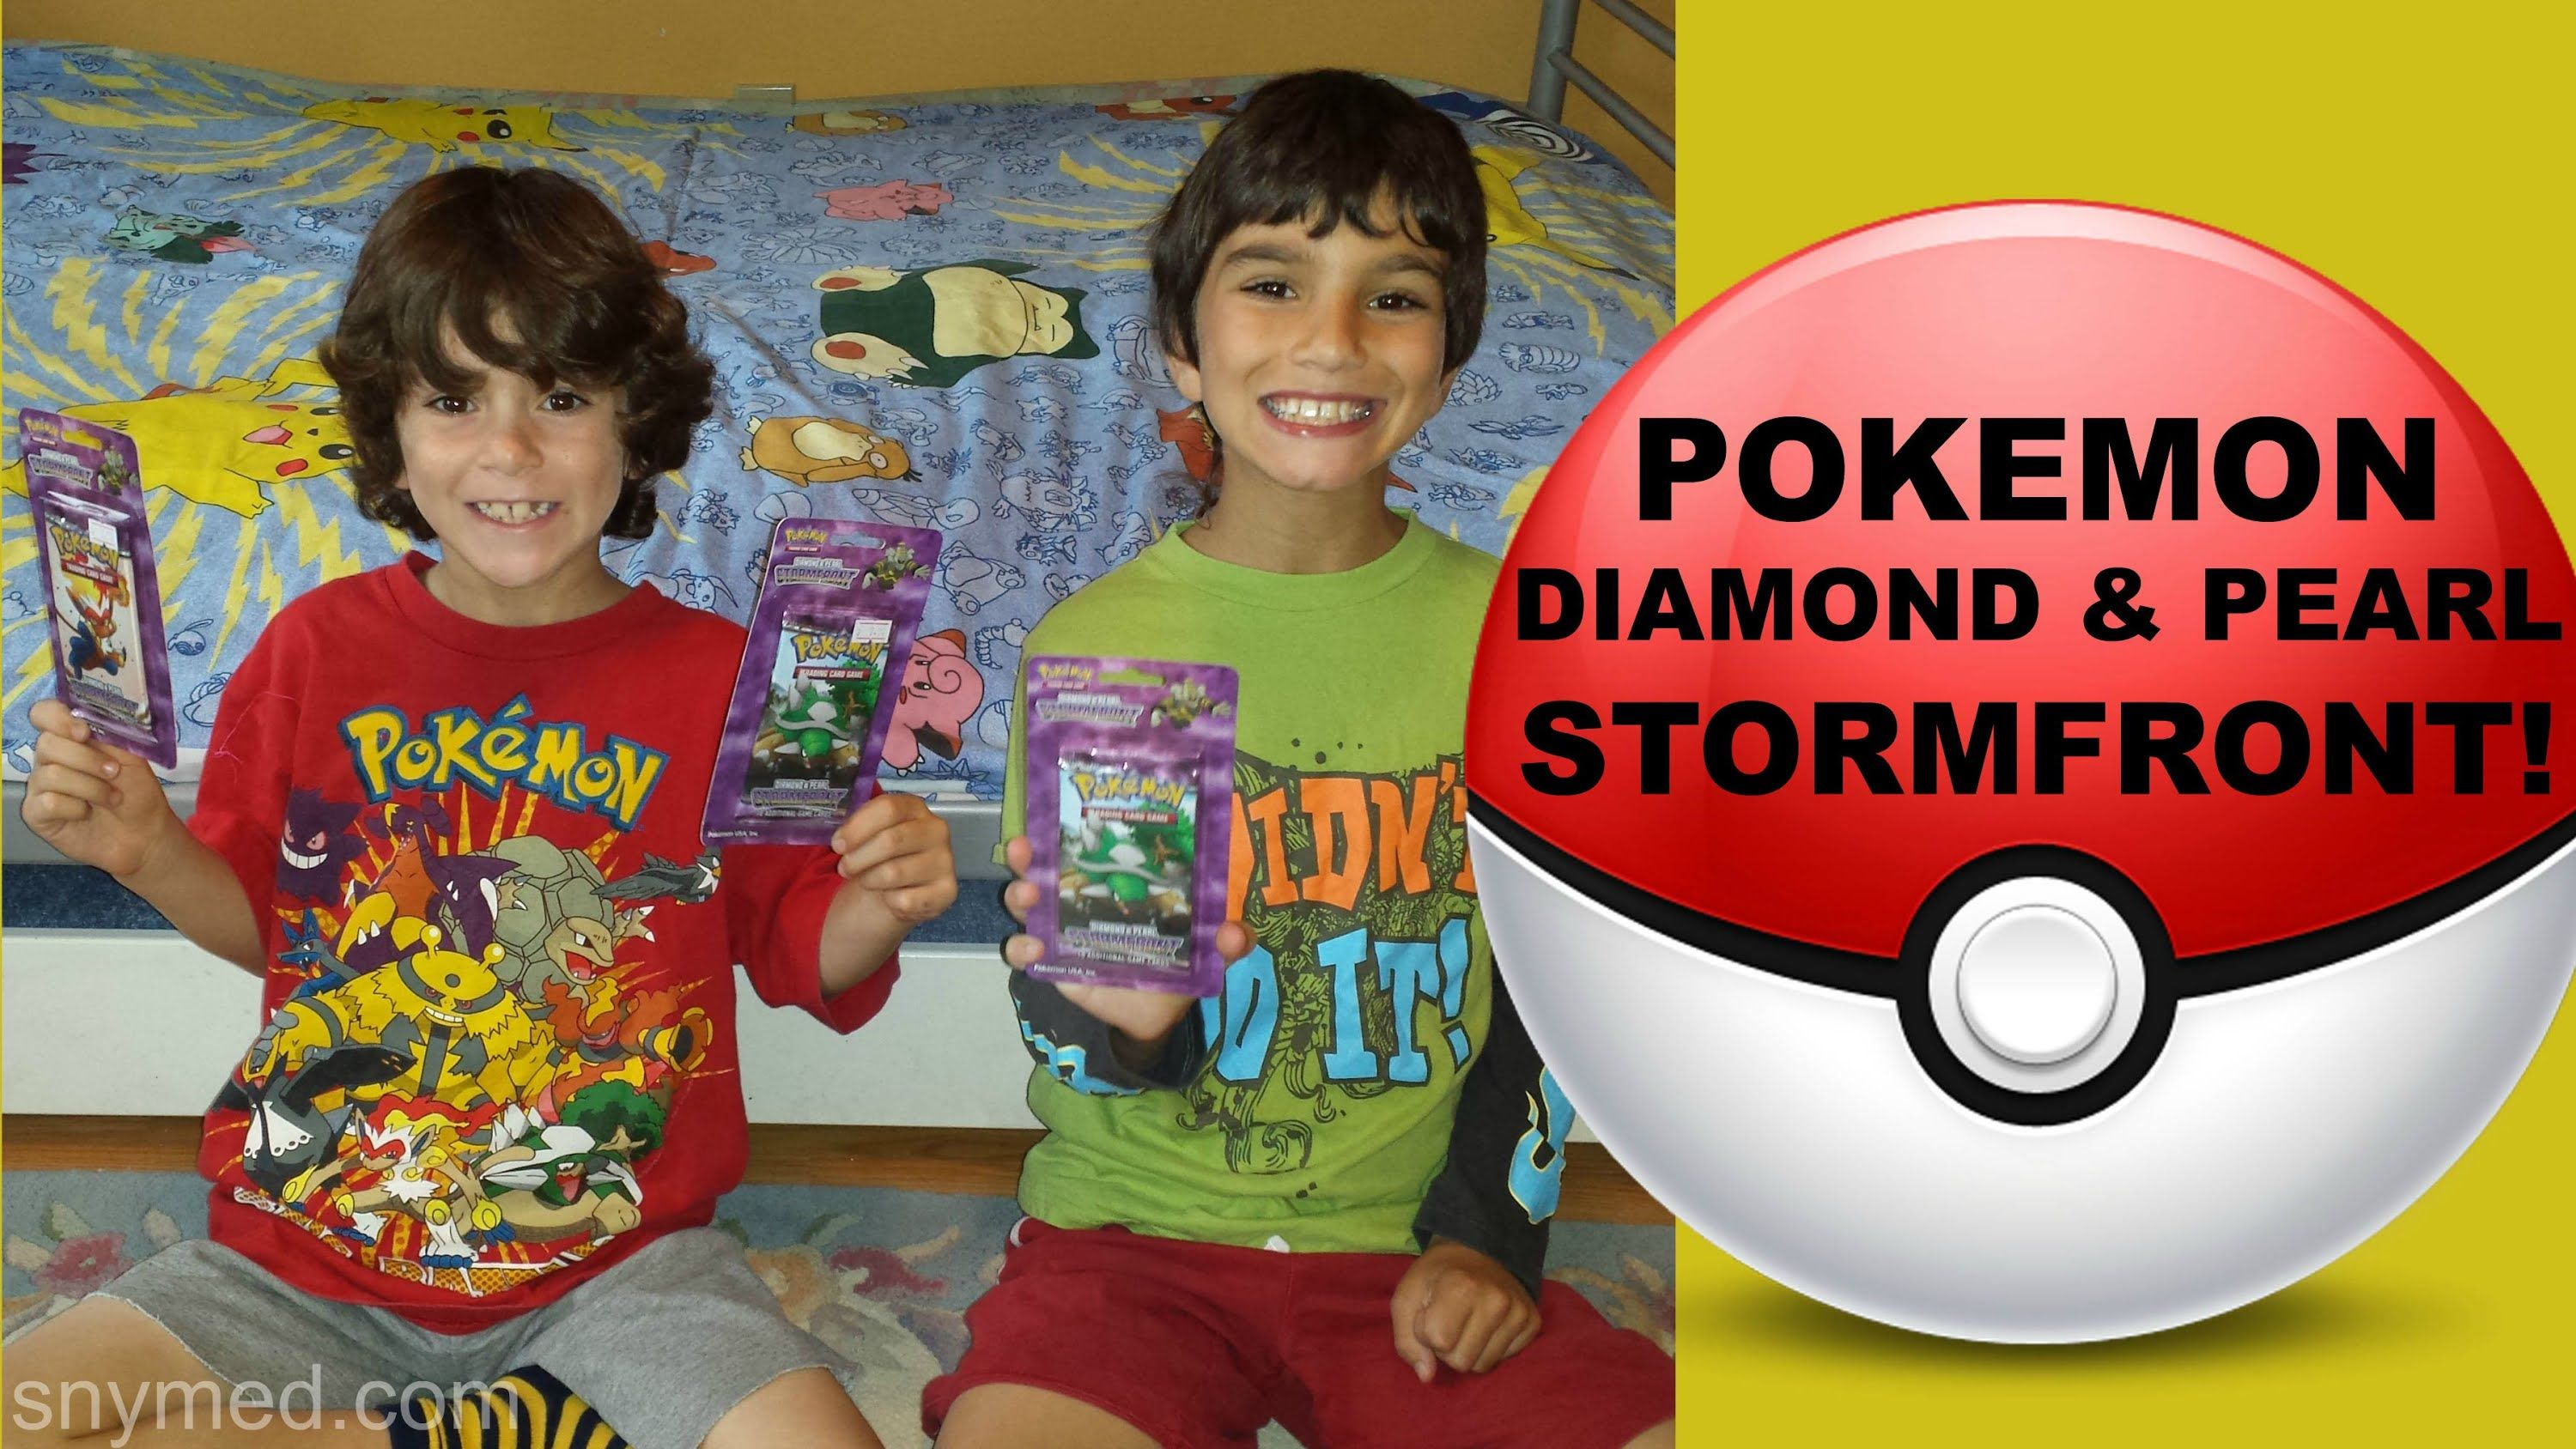 #VIDEO: Pokemon Diamond & Pearl Stormfront Booster Pack Openings Video!  WATCH: https://youtu.be/_0Pg6r_vif8